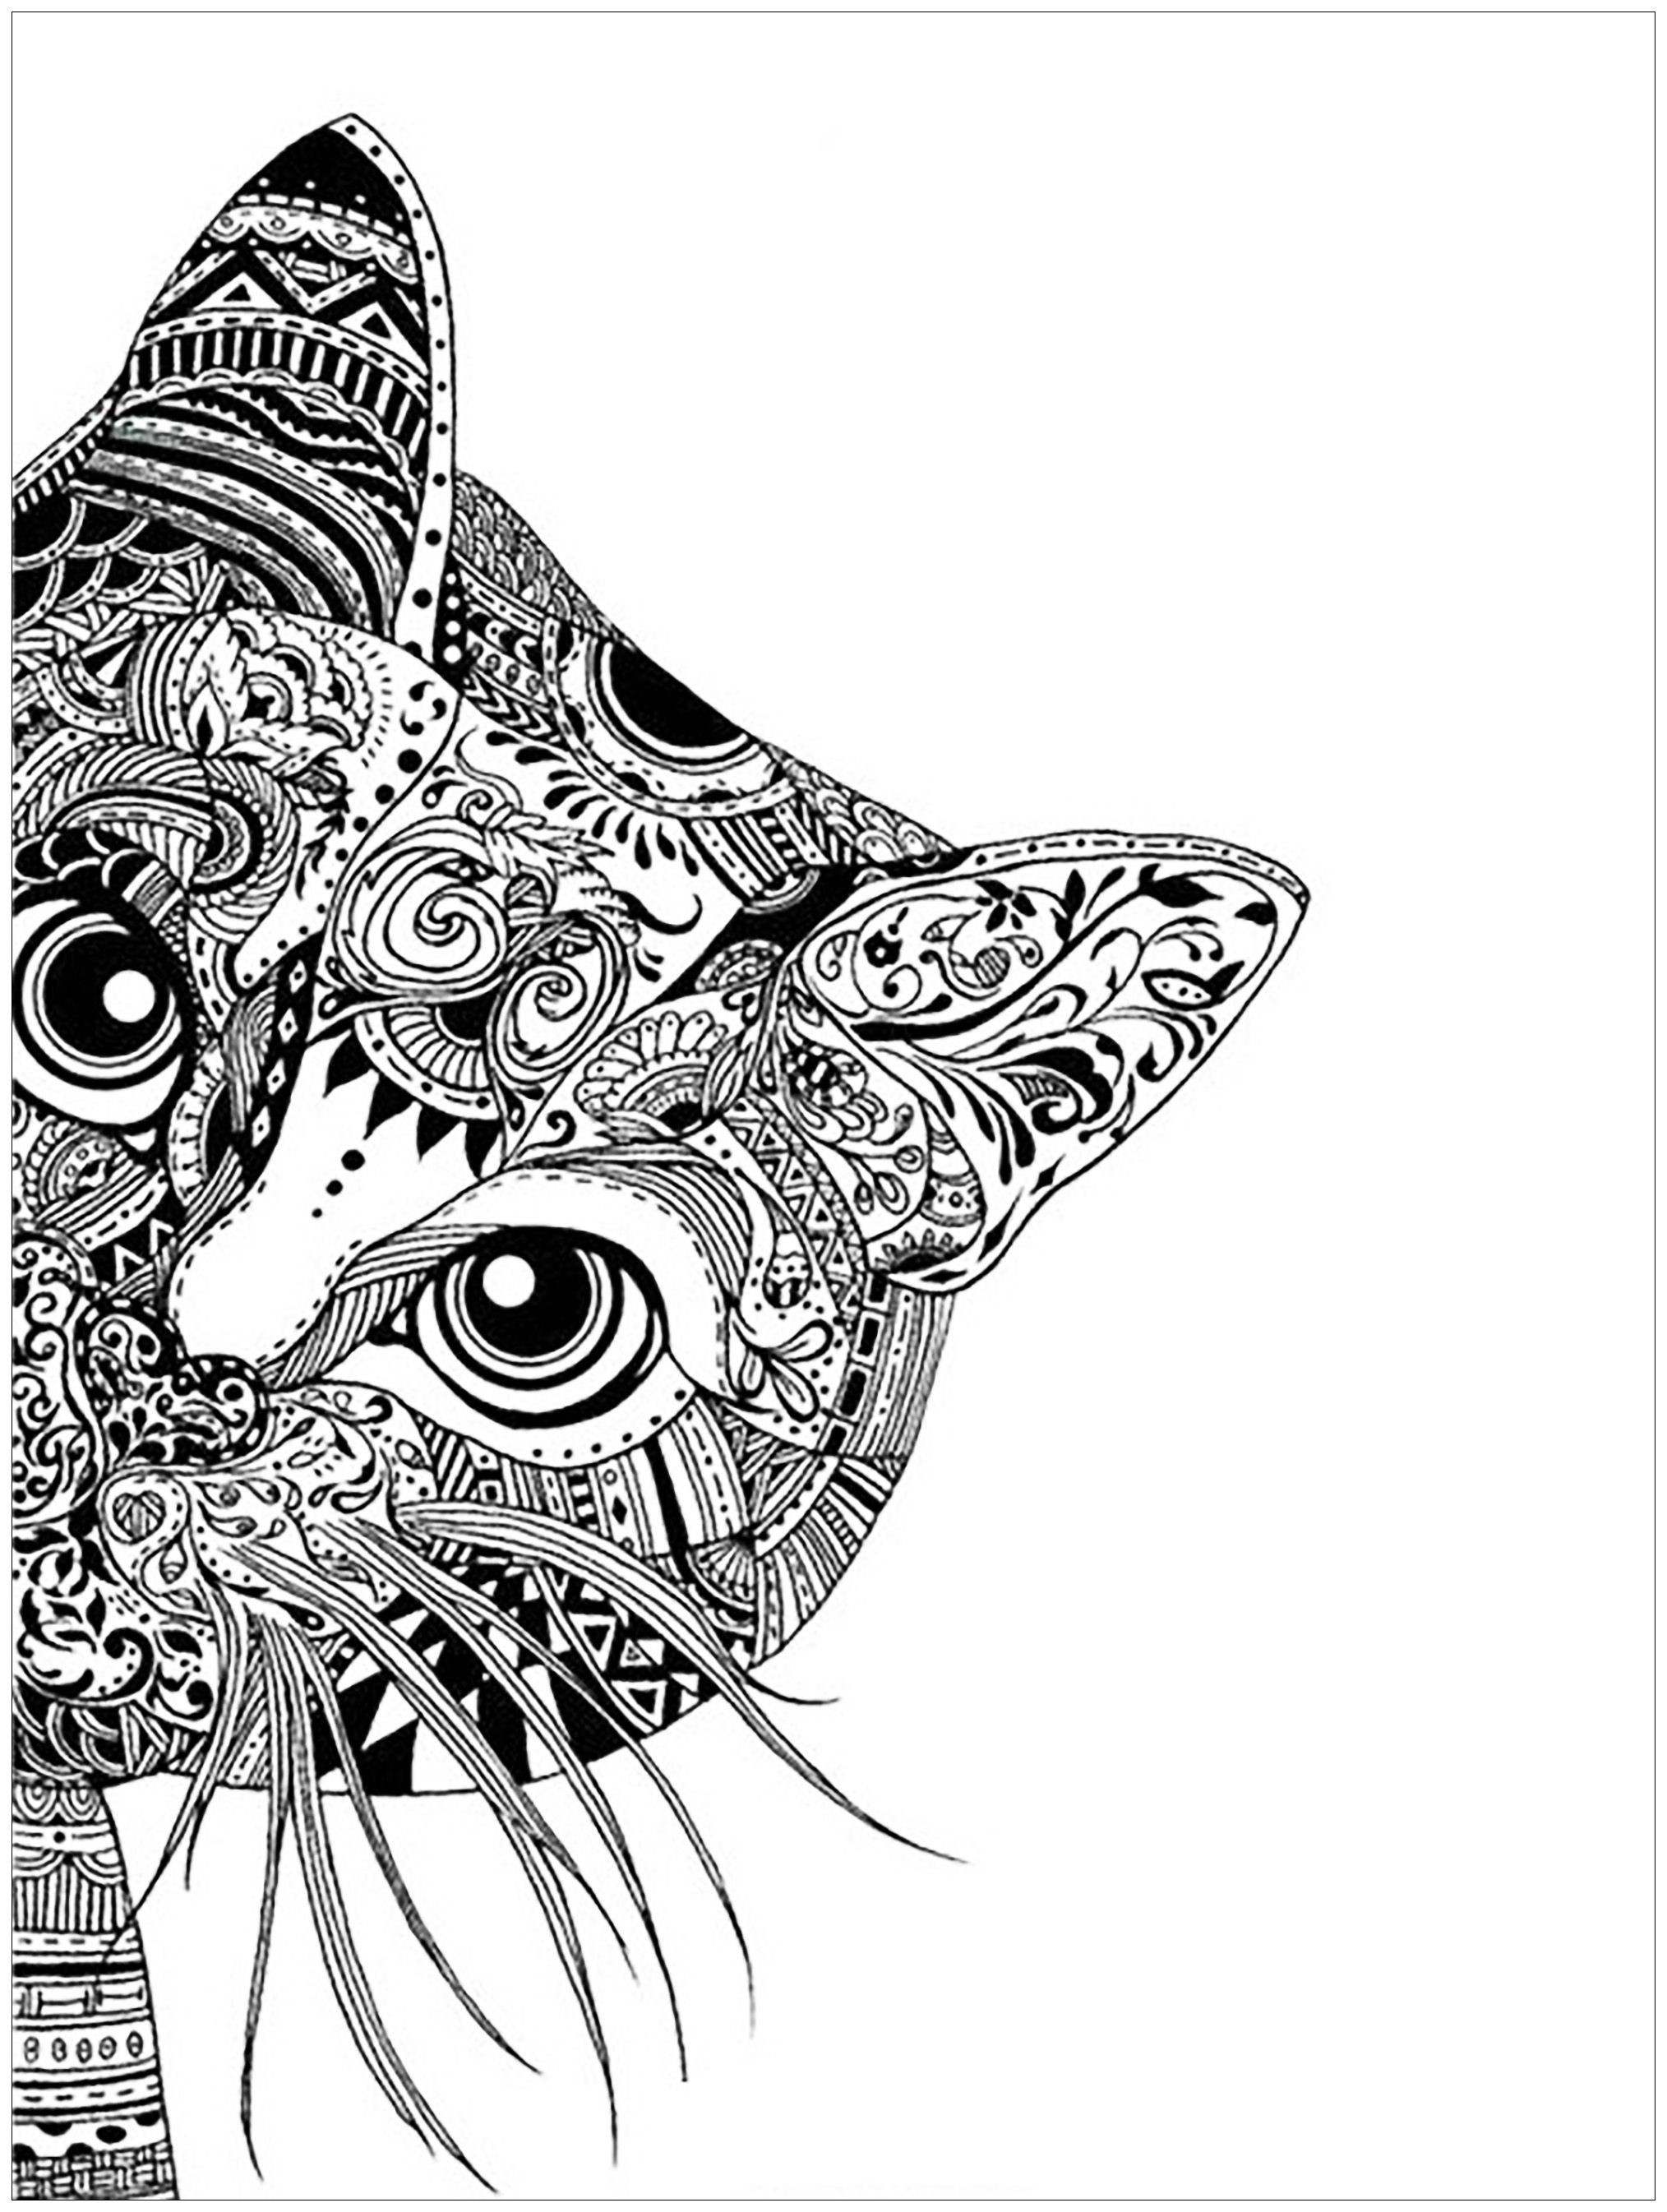 intricate-coloring-pages-animals-of-intricate-coloring-pages-animals Intricate Coloring Pages Animals Animal